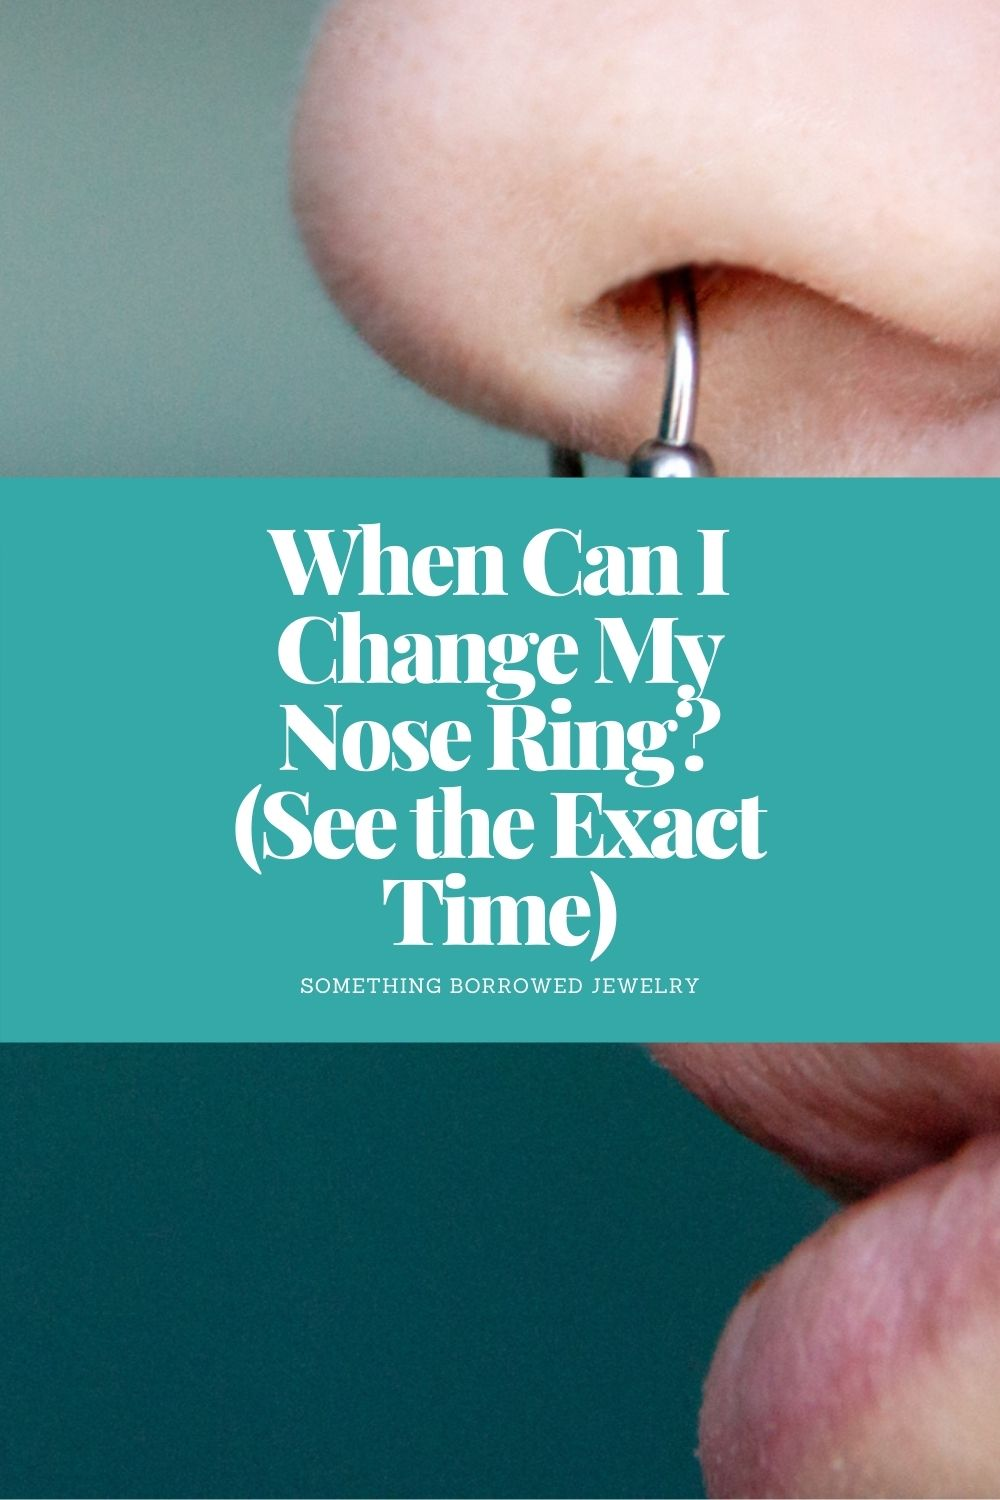 When Can I Change My Nose Ring (See the Exact Time) pin 2